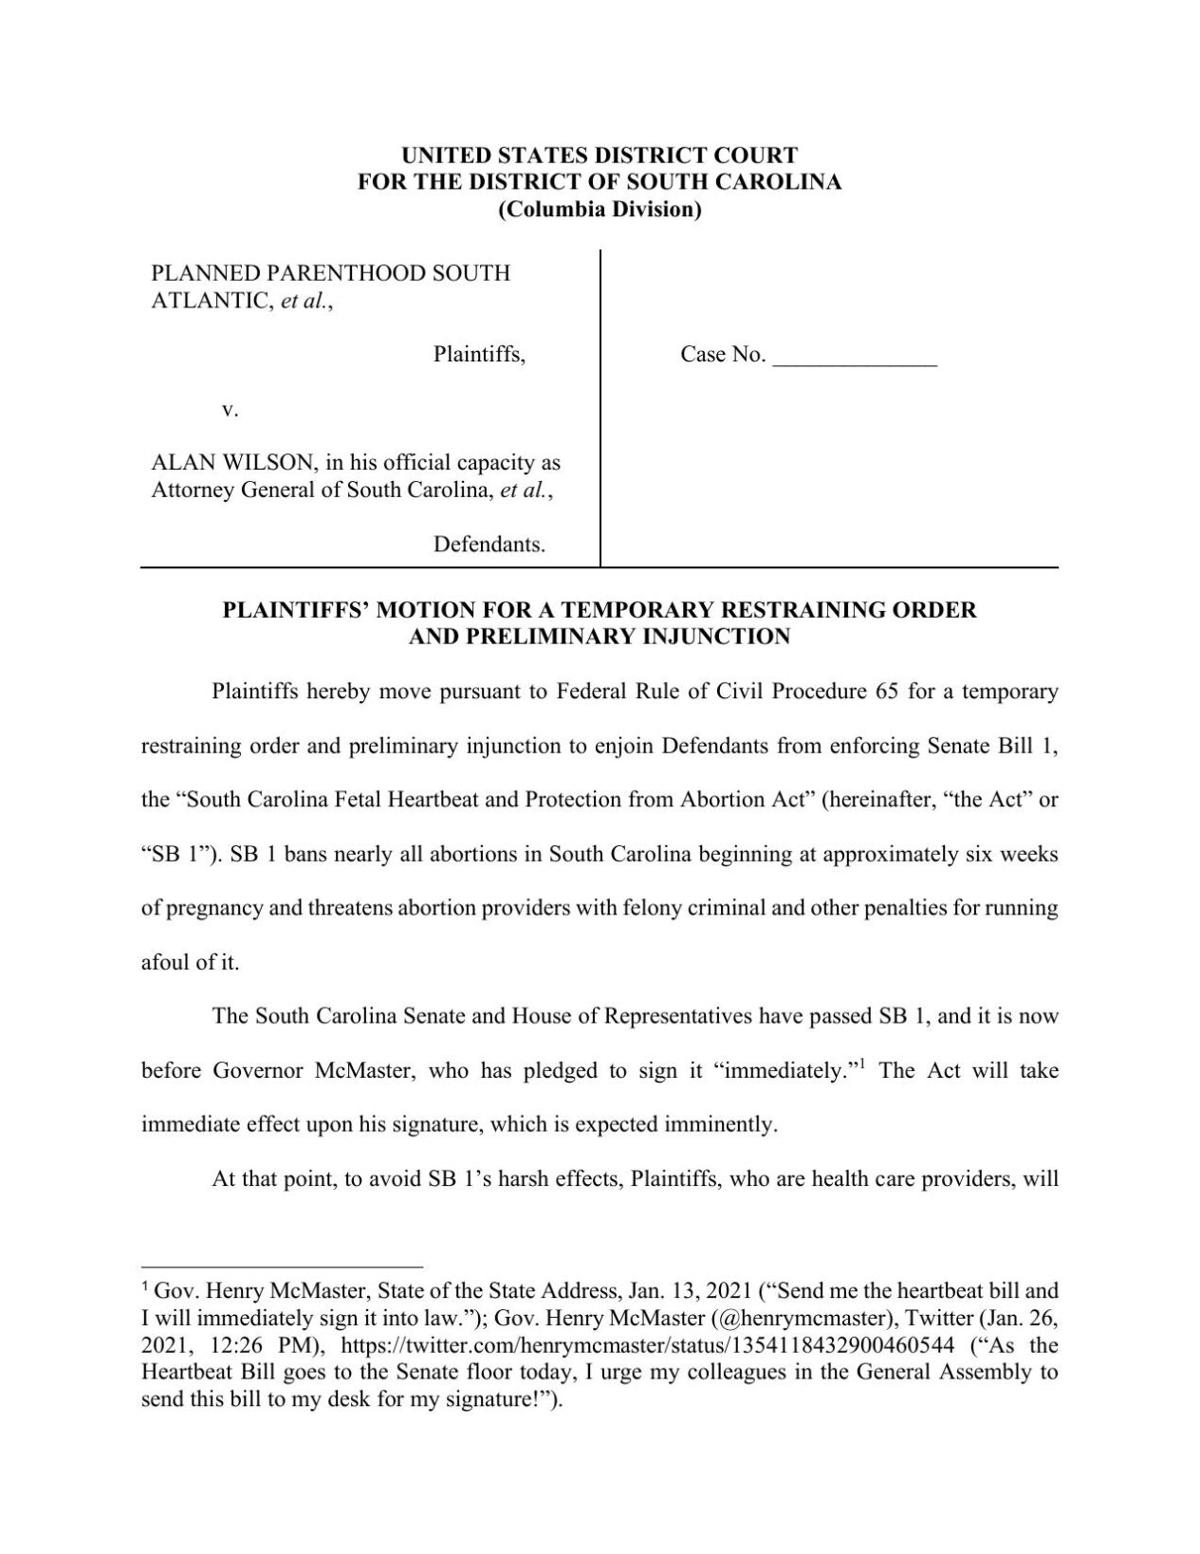 Planned Parenthood's motion for temporary restraining order